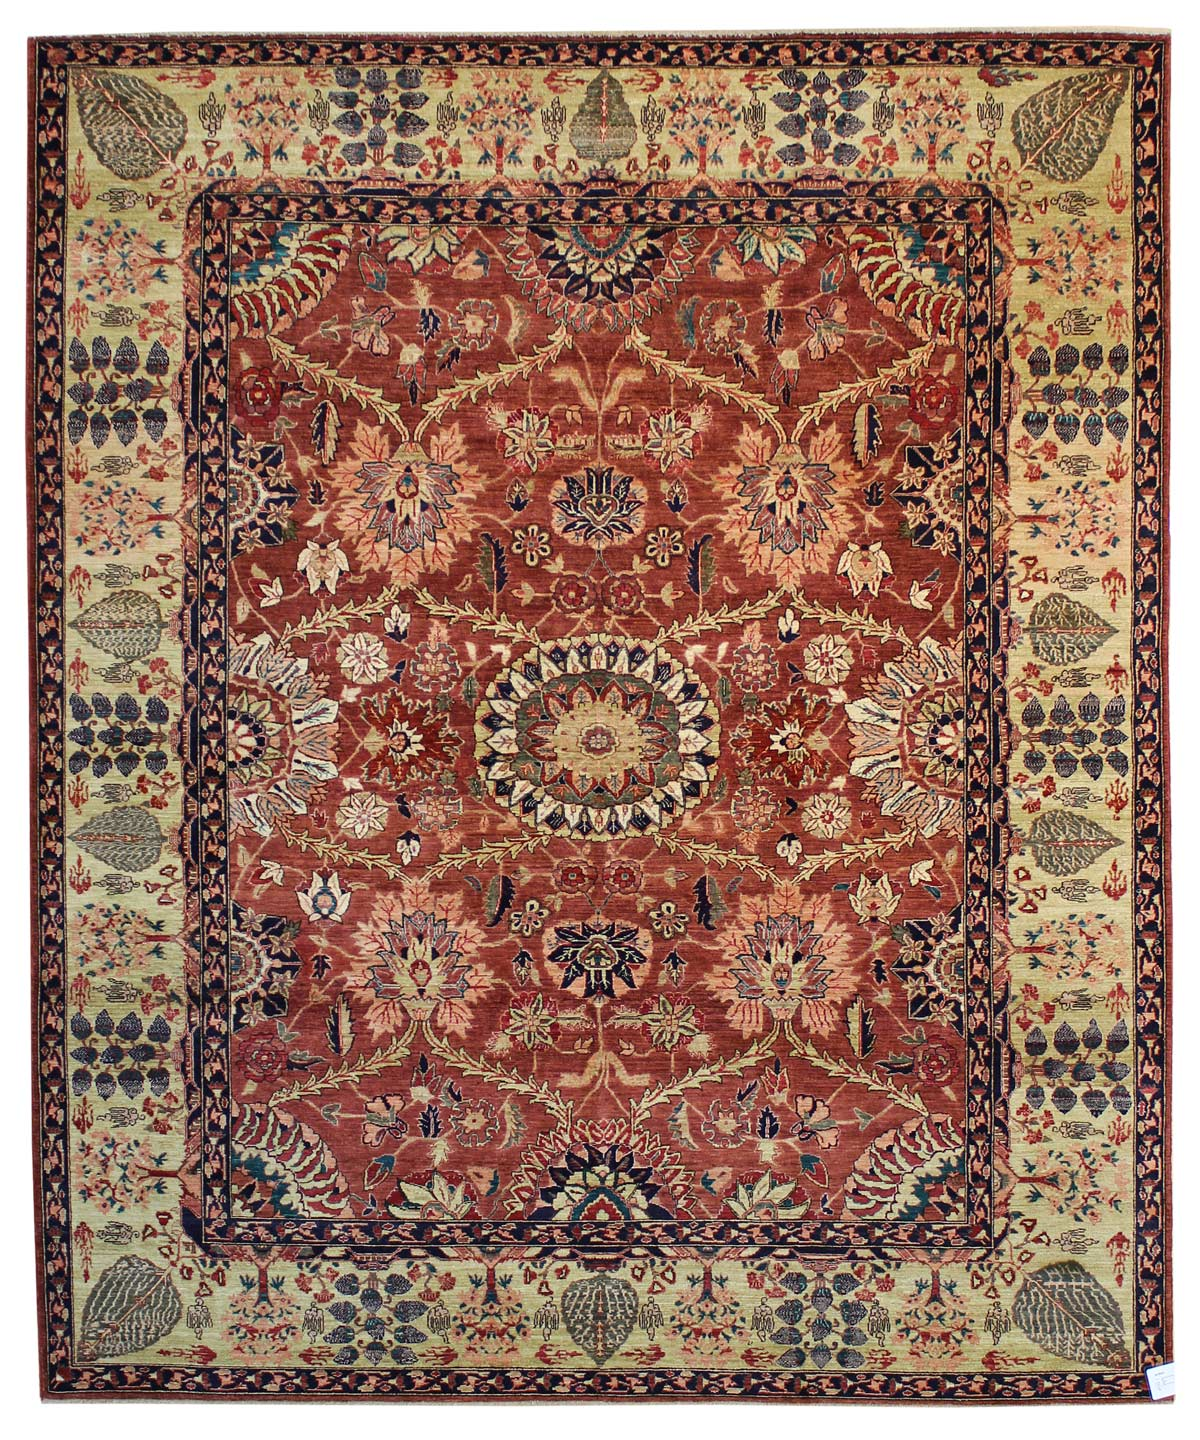 Moghul Handwoven Traditional Rug